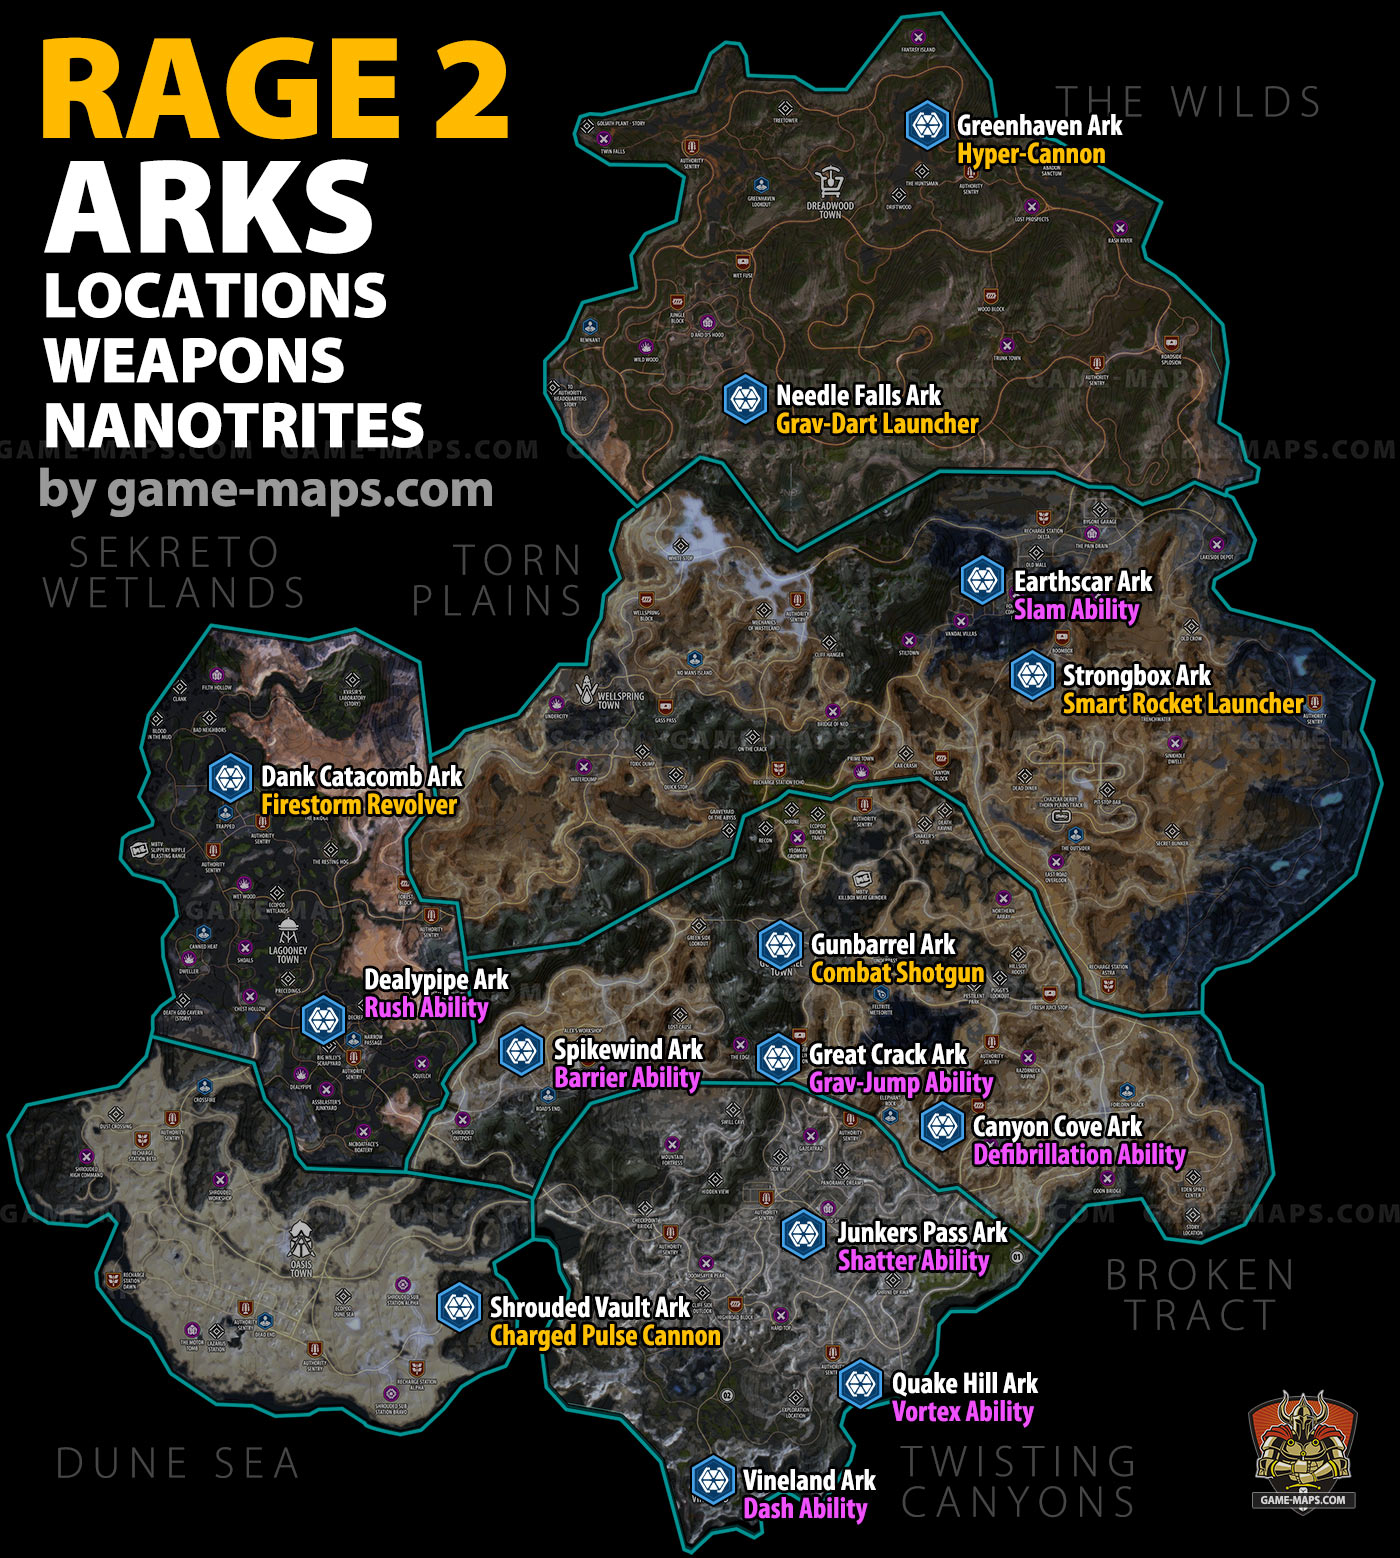 Rage 2 Arks: Locations, Weapons and Nanotrites   game-maps.com Map Of Ark on map of butterfly, map of ray, map of callaway, map of greenbrier county, map of ane, map of ar, map of adk, map of scoop, map of arga, map of oklahoma, map of baskerville, map of angel, map of real, map of cranberry wilderness, map of arkansas, map of colonial heights, map of control, map of dinwiddie, map of corbin, map of batesville,